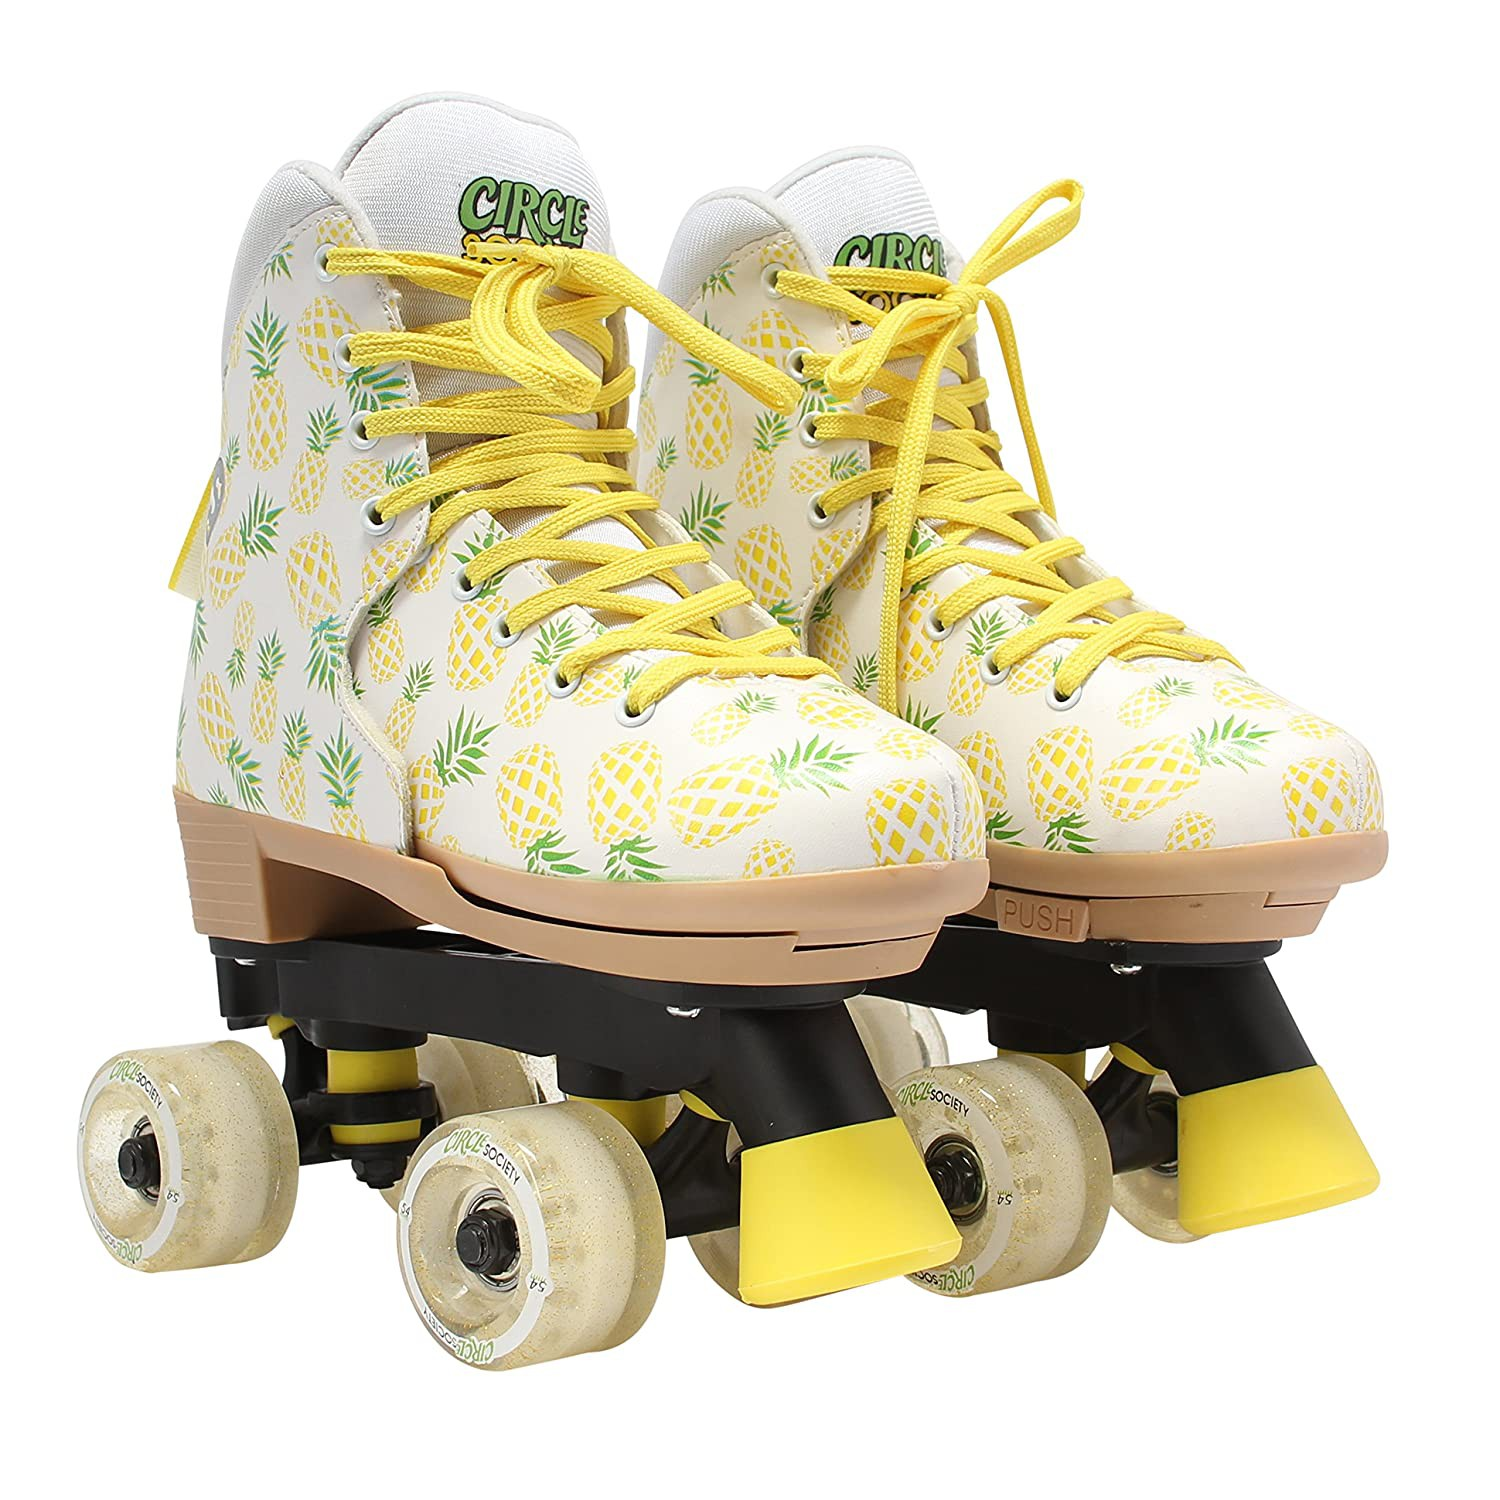 Circle Society Classic Adjustable Children's Roller Skates, Crushed Pineapple